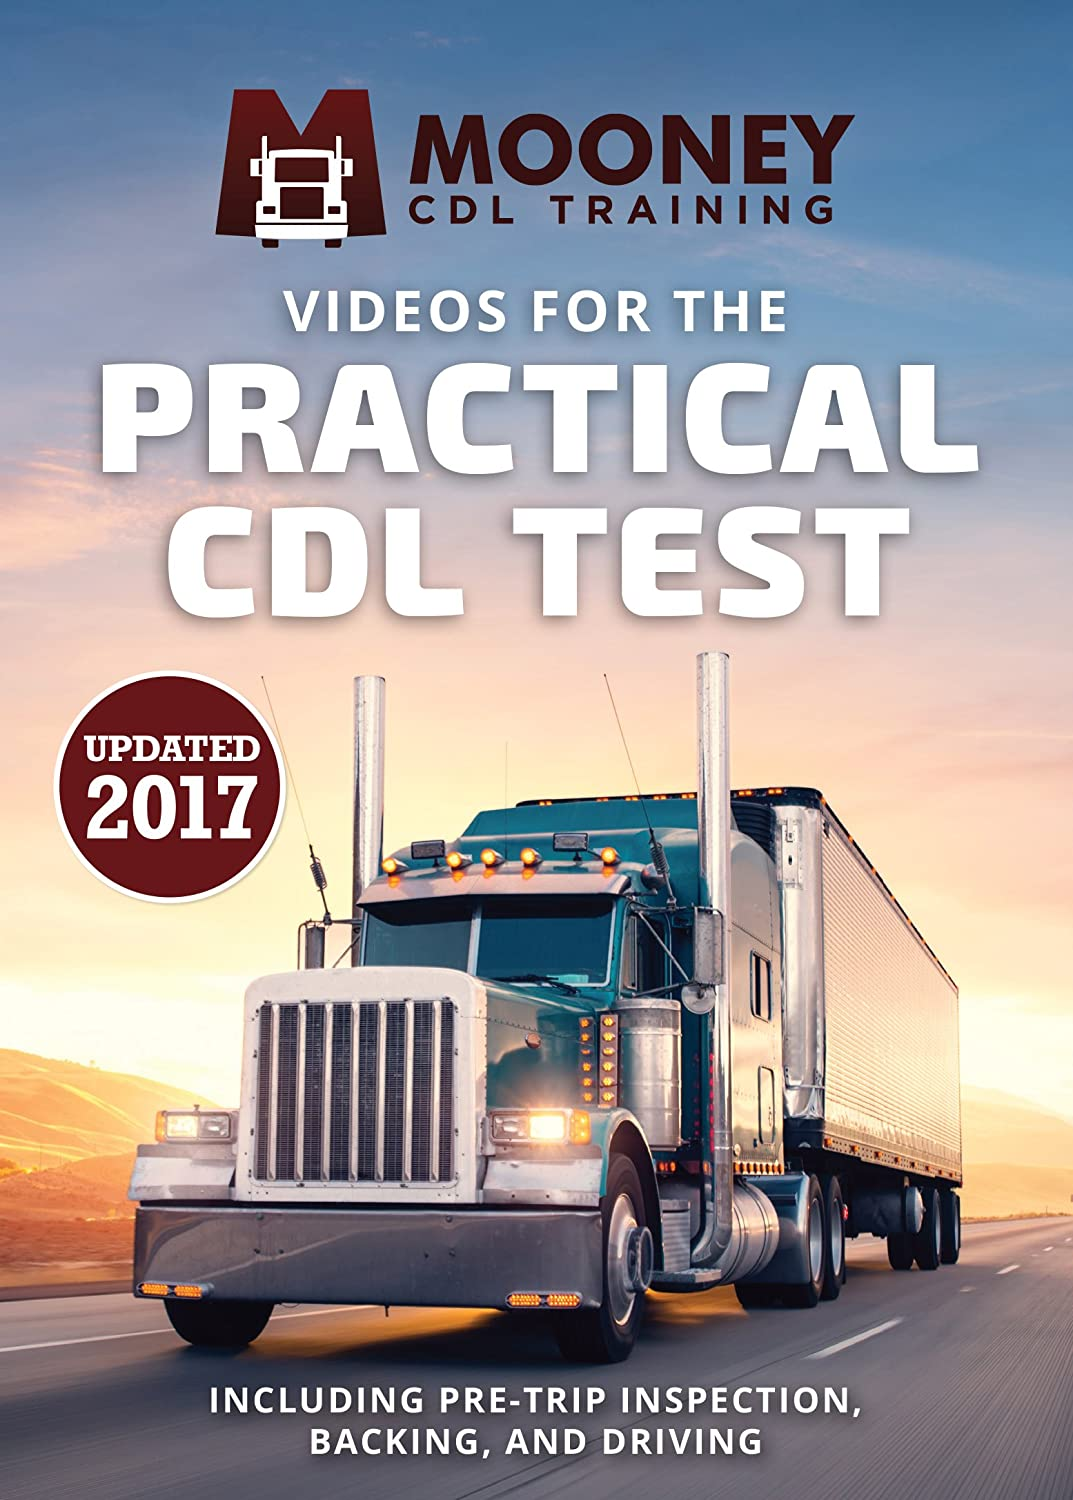 Mooney CDL Training DVD Video Course for Commercial Driver License Road Test  Including Pre Trip Inspection, Driving, Backing for CDL Driving or  Practical ...